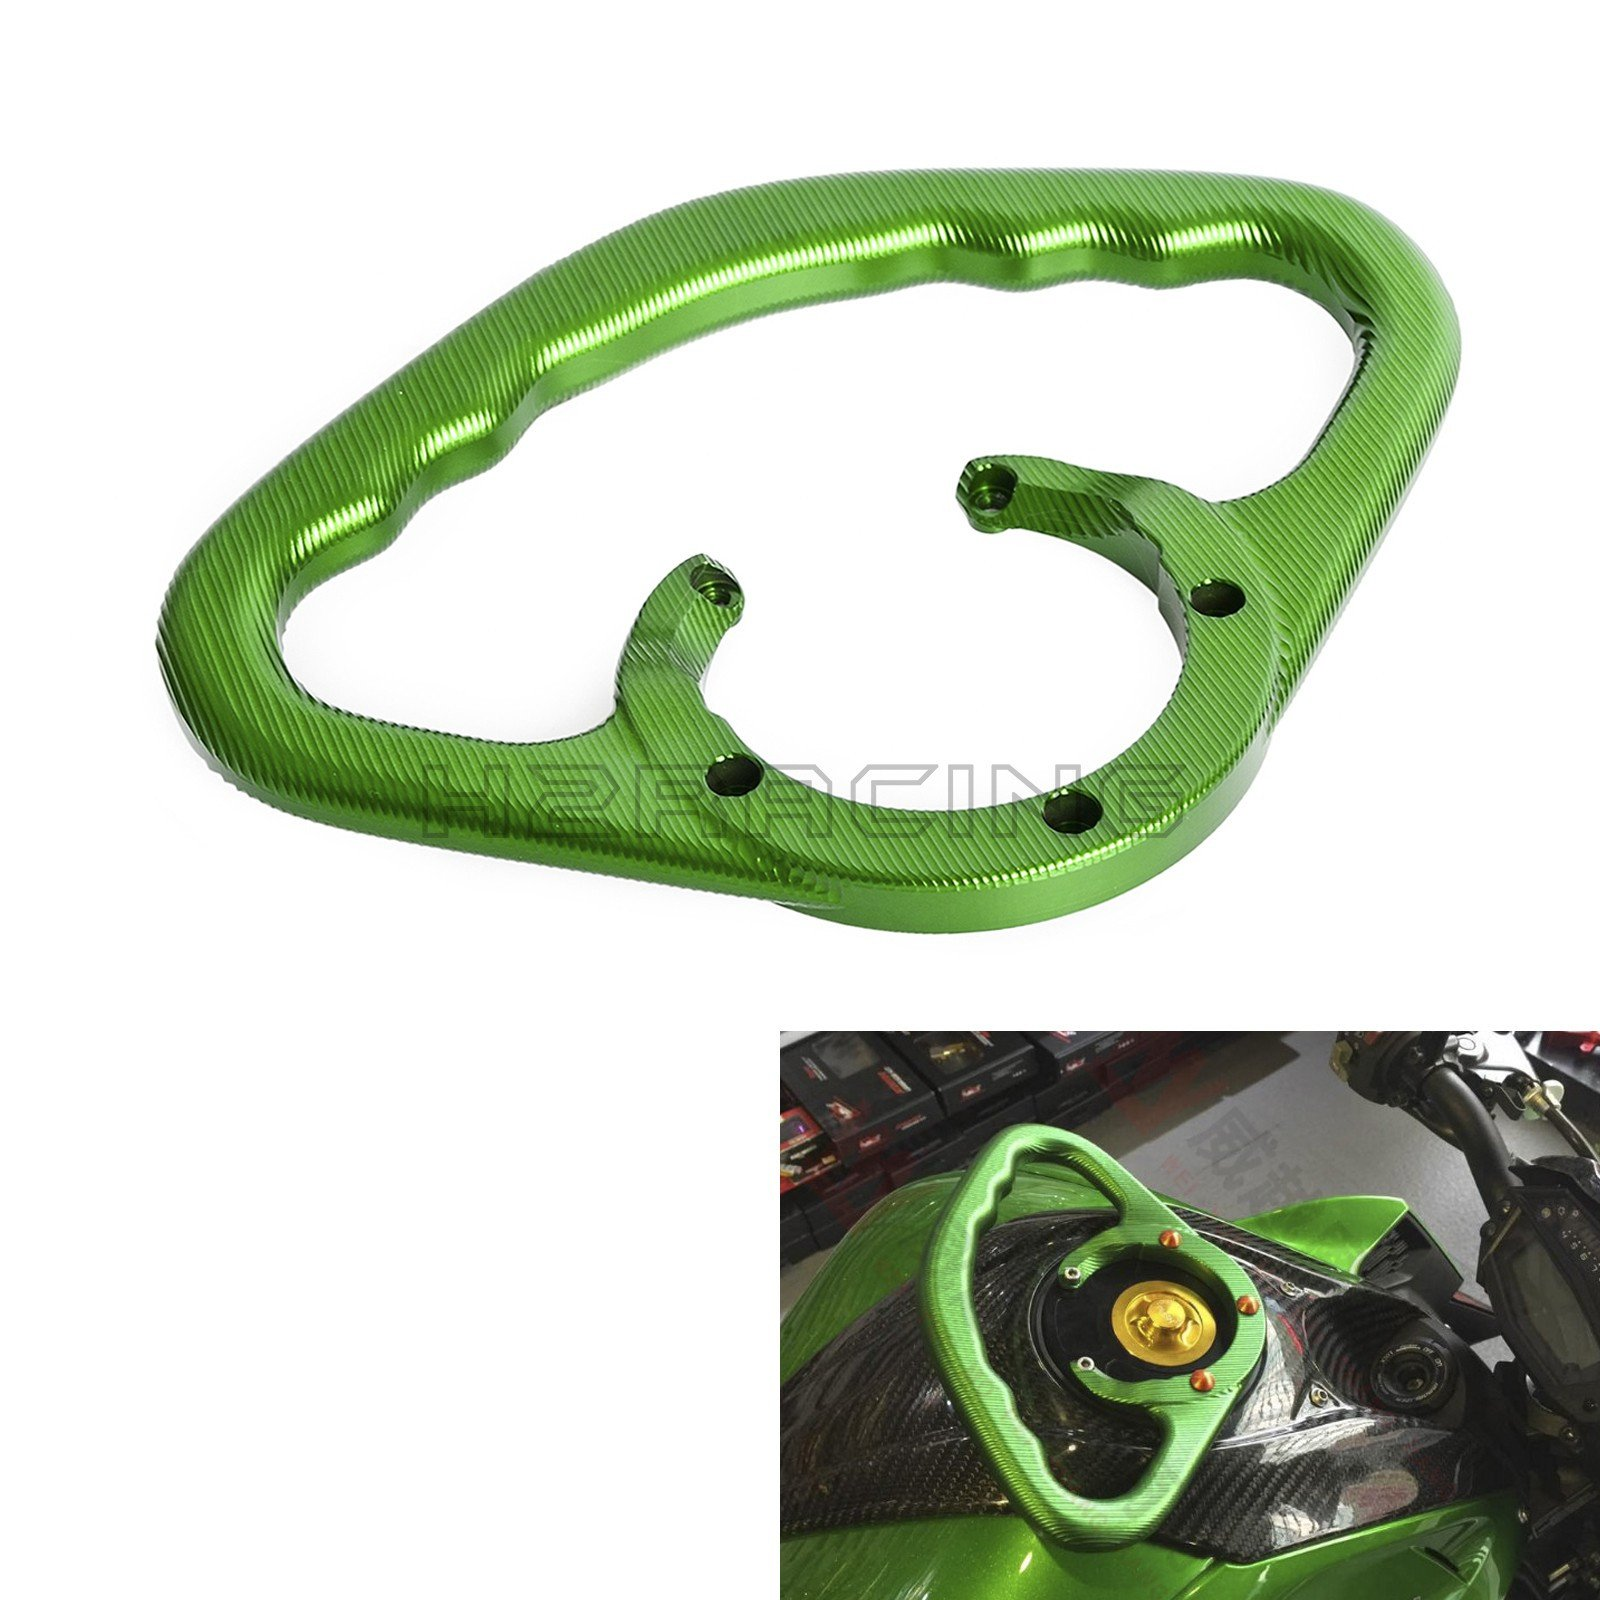 H2RACING Green Tank Grab Passenger Grab Handle for Kawasaki ZX-14R 06-15 Concours 14 2010,ABS 11-16 ZZR1200 02-05 ZRX1200R 01-05 Z1000/ABS 03-16 ZX-9R 00-04